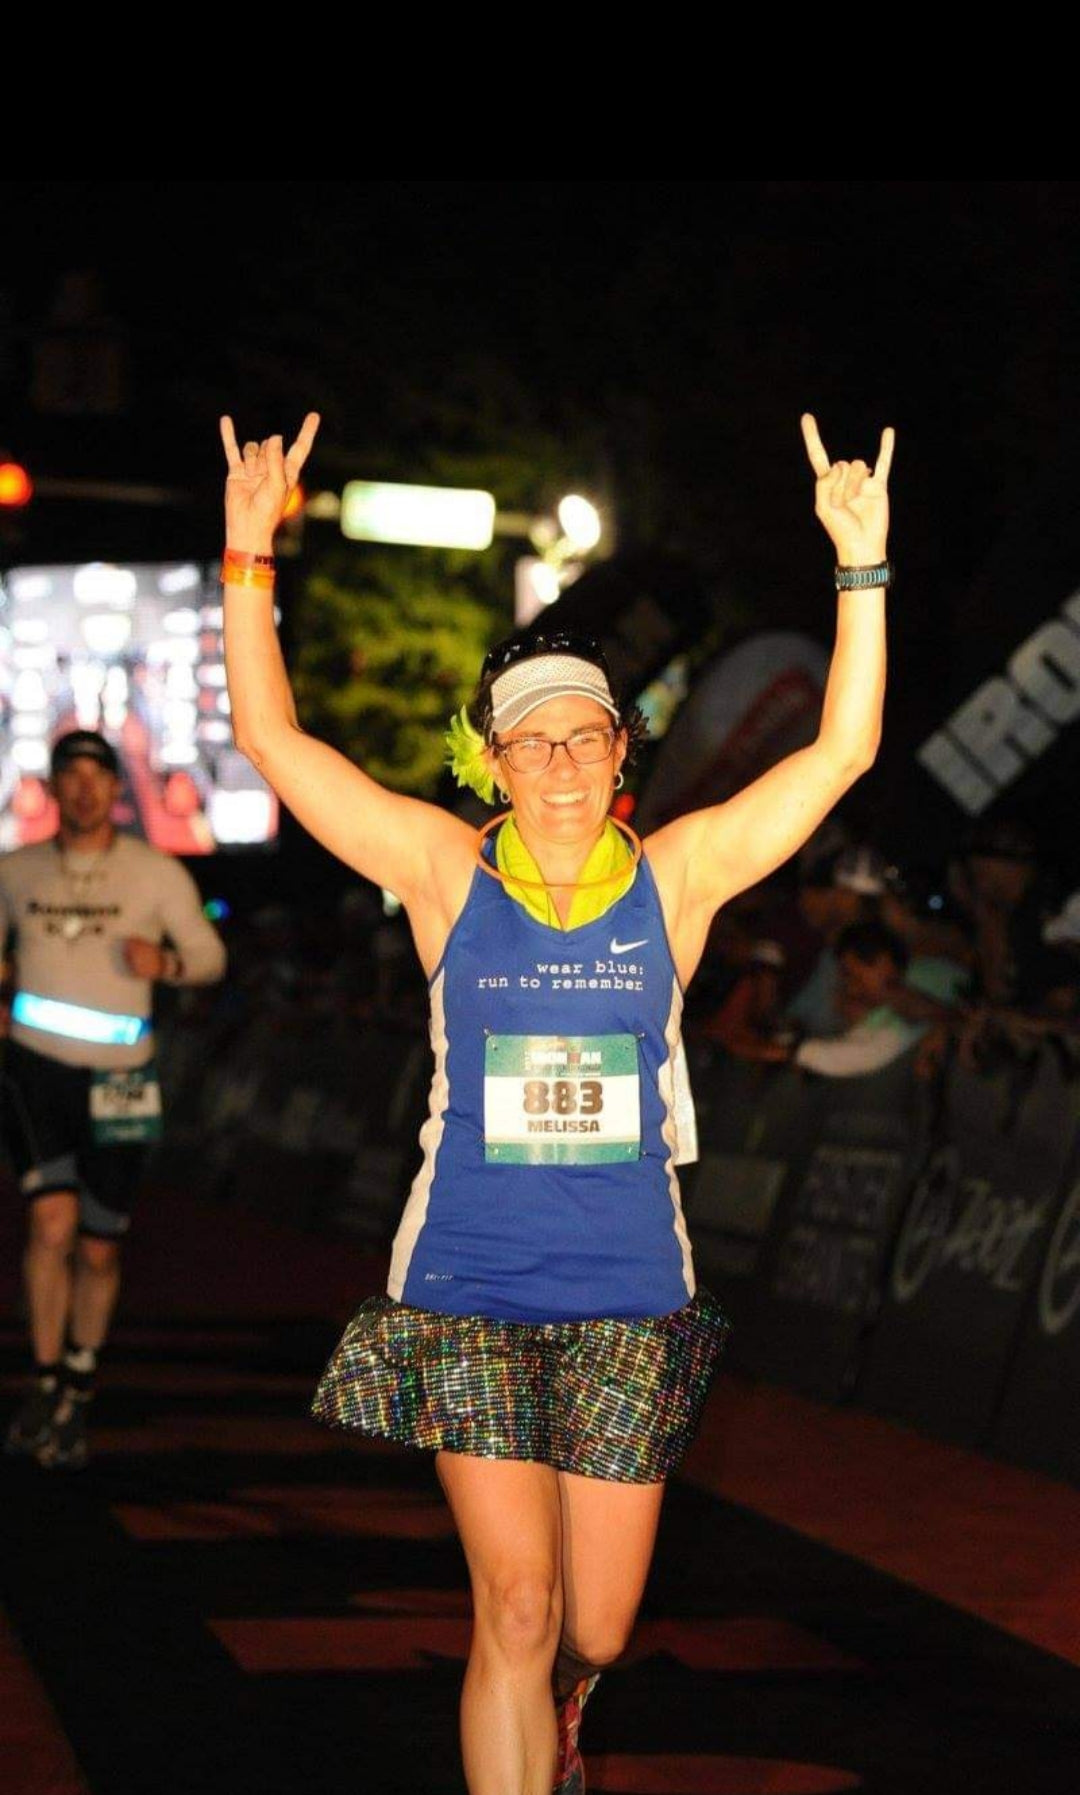 Melissa Marowelli smiling while finishing a race wearing a Bolder Athletic Wear skirt